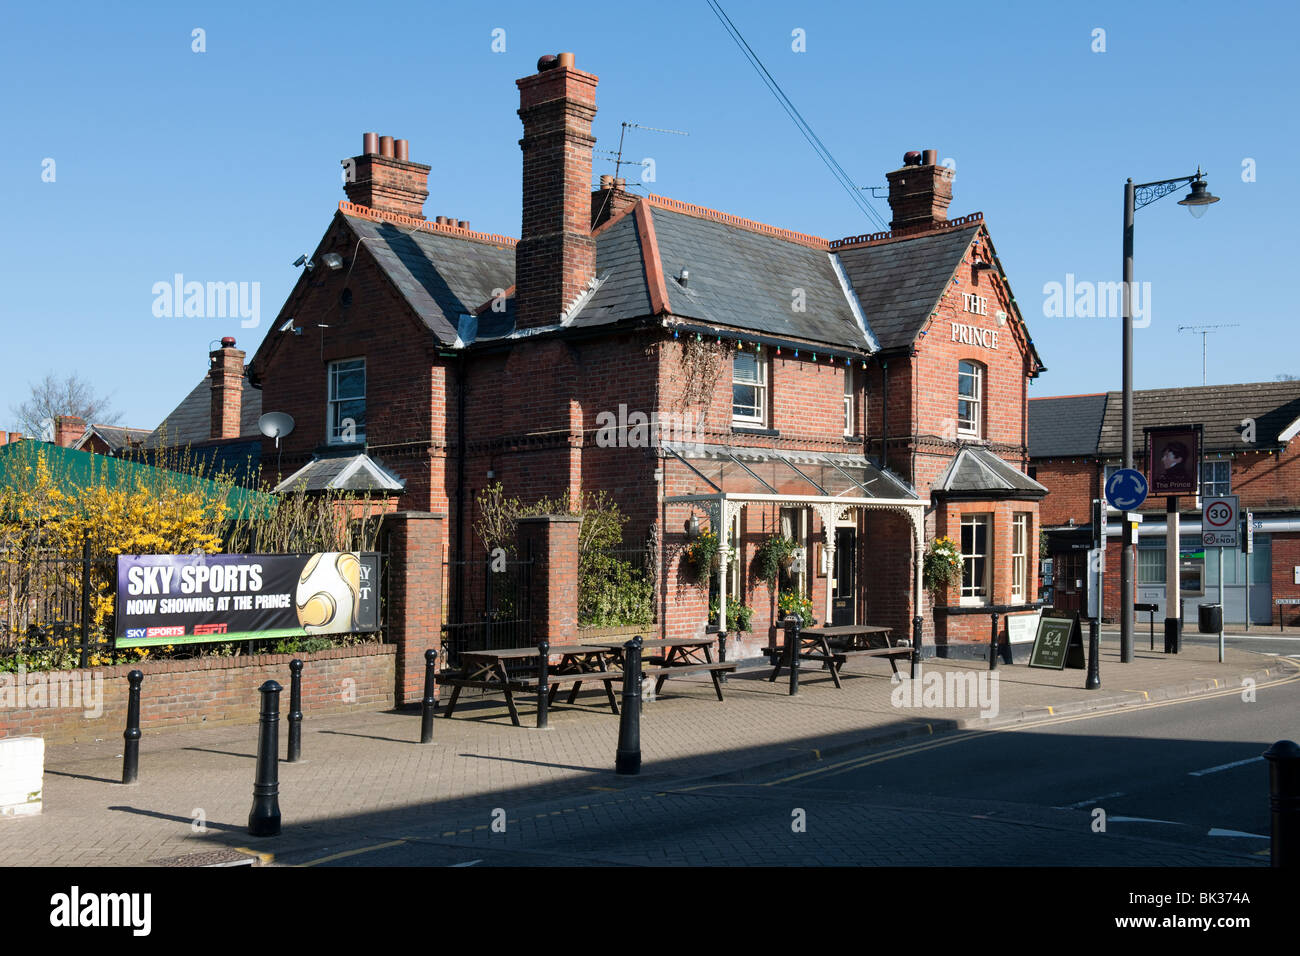 The Prince Public House Crowthorne Berkshire UK - Stock Image